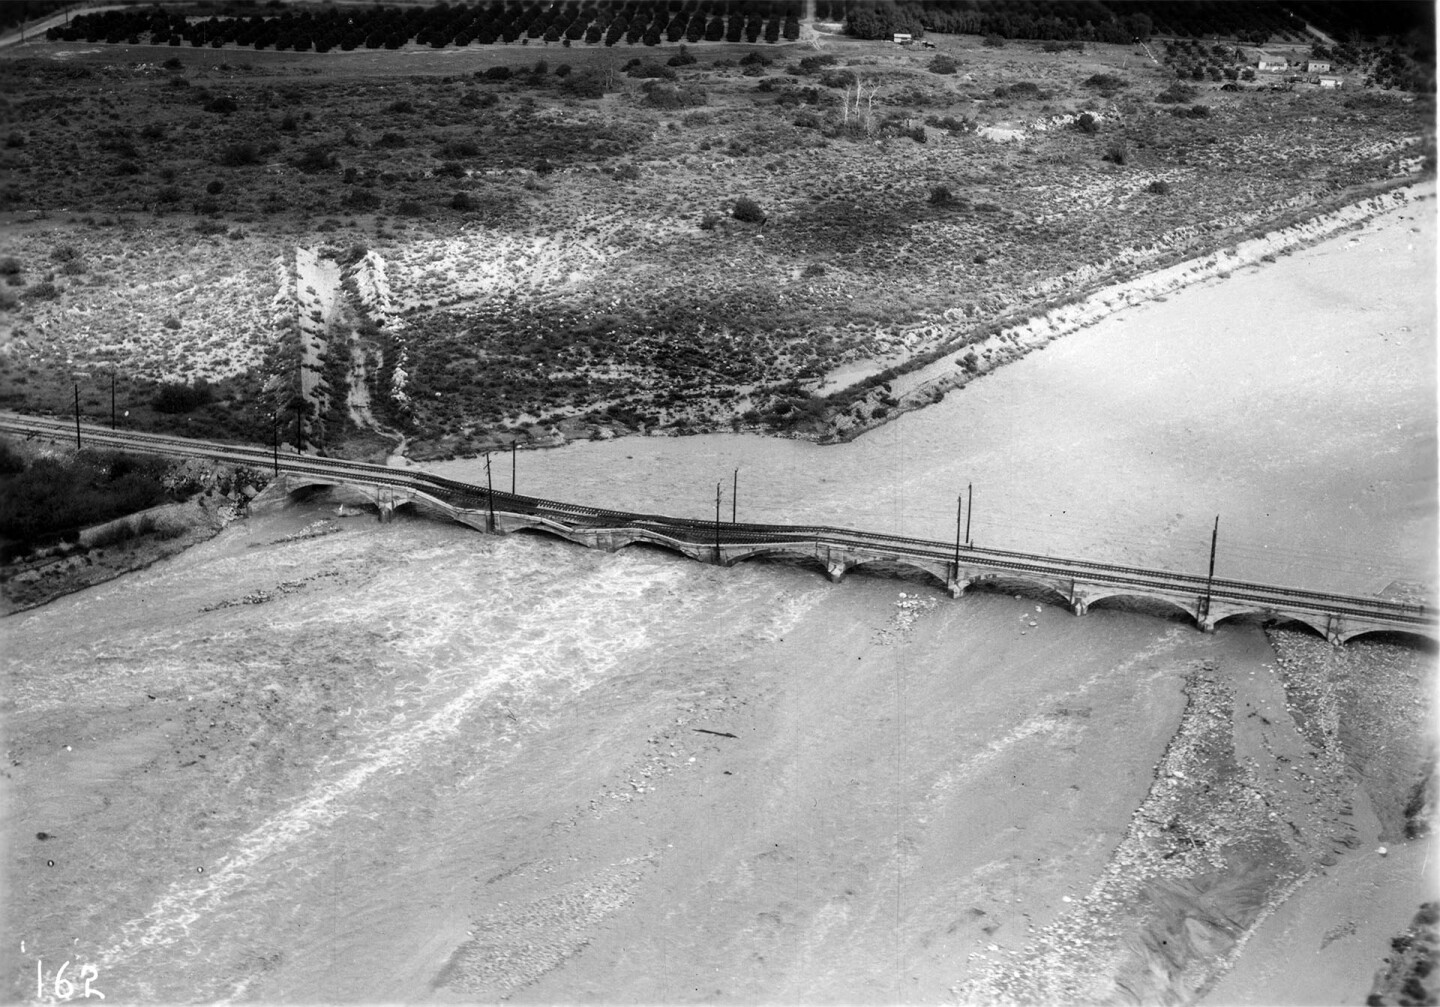 Azusa during the flood of 1938